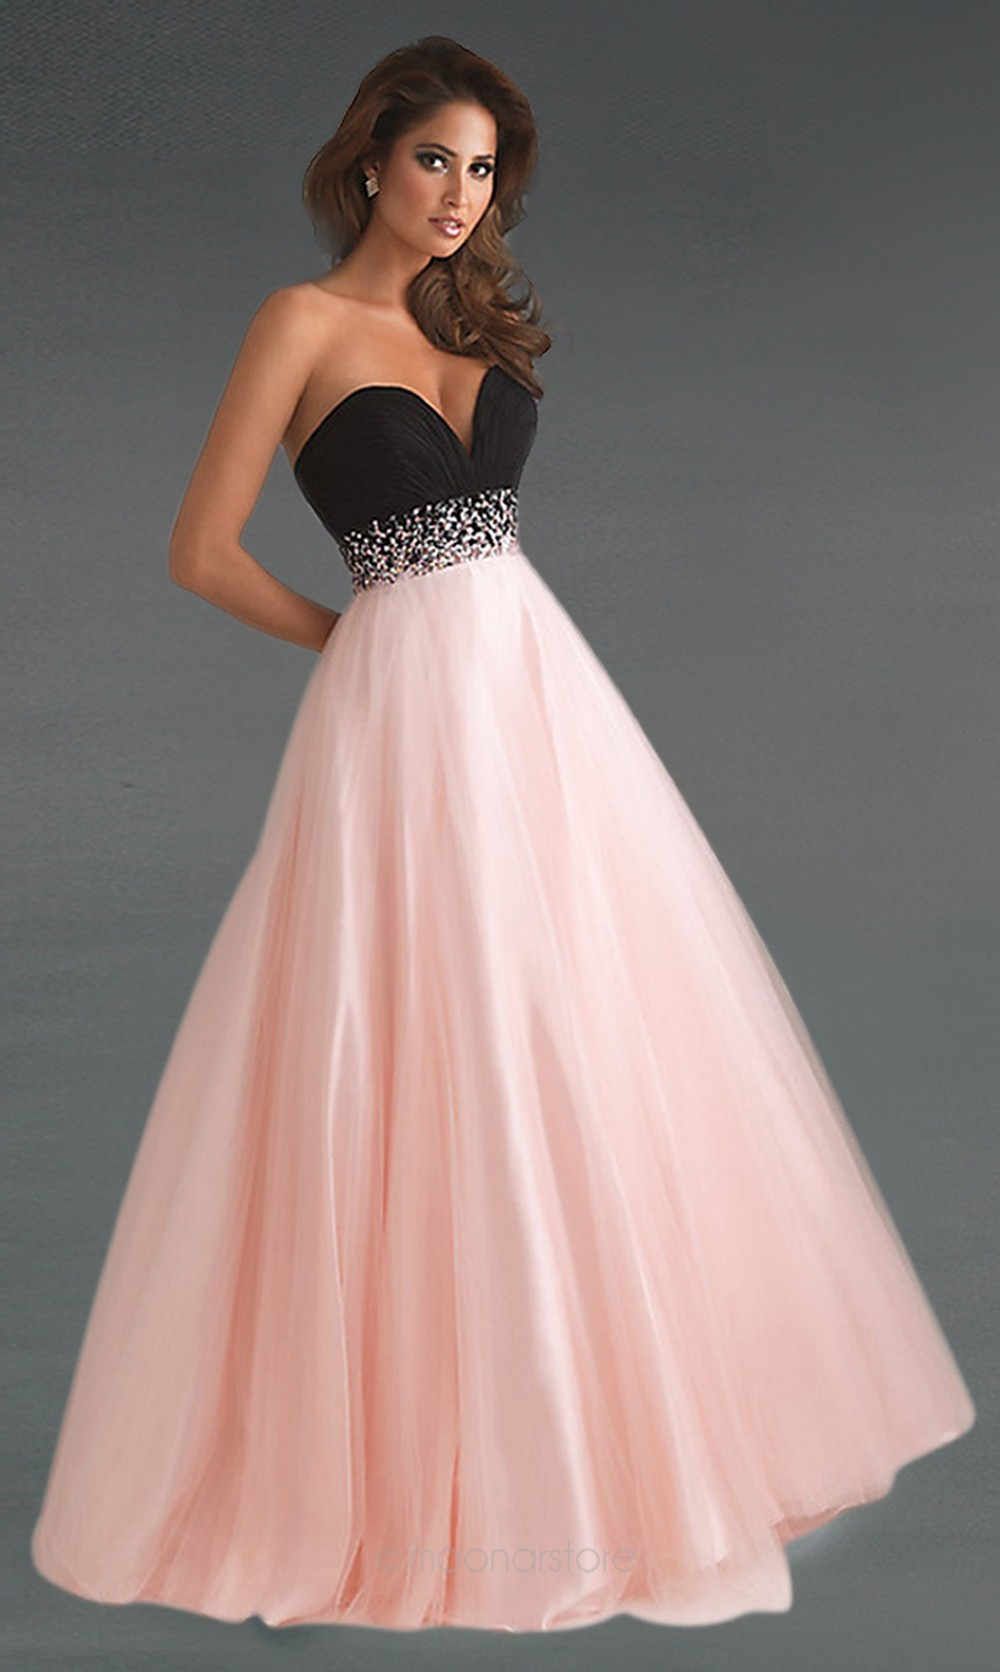 Women Sexy A line Evening Party Prom Patchwork Style Chiffon & Organza Beads and Pleated Sweetheart Off Shoulder Dress 15/LF156-in Prom Dresses from Apparel & Accessories on Aliexpress.com